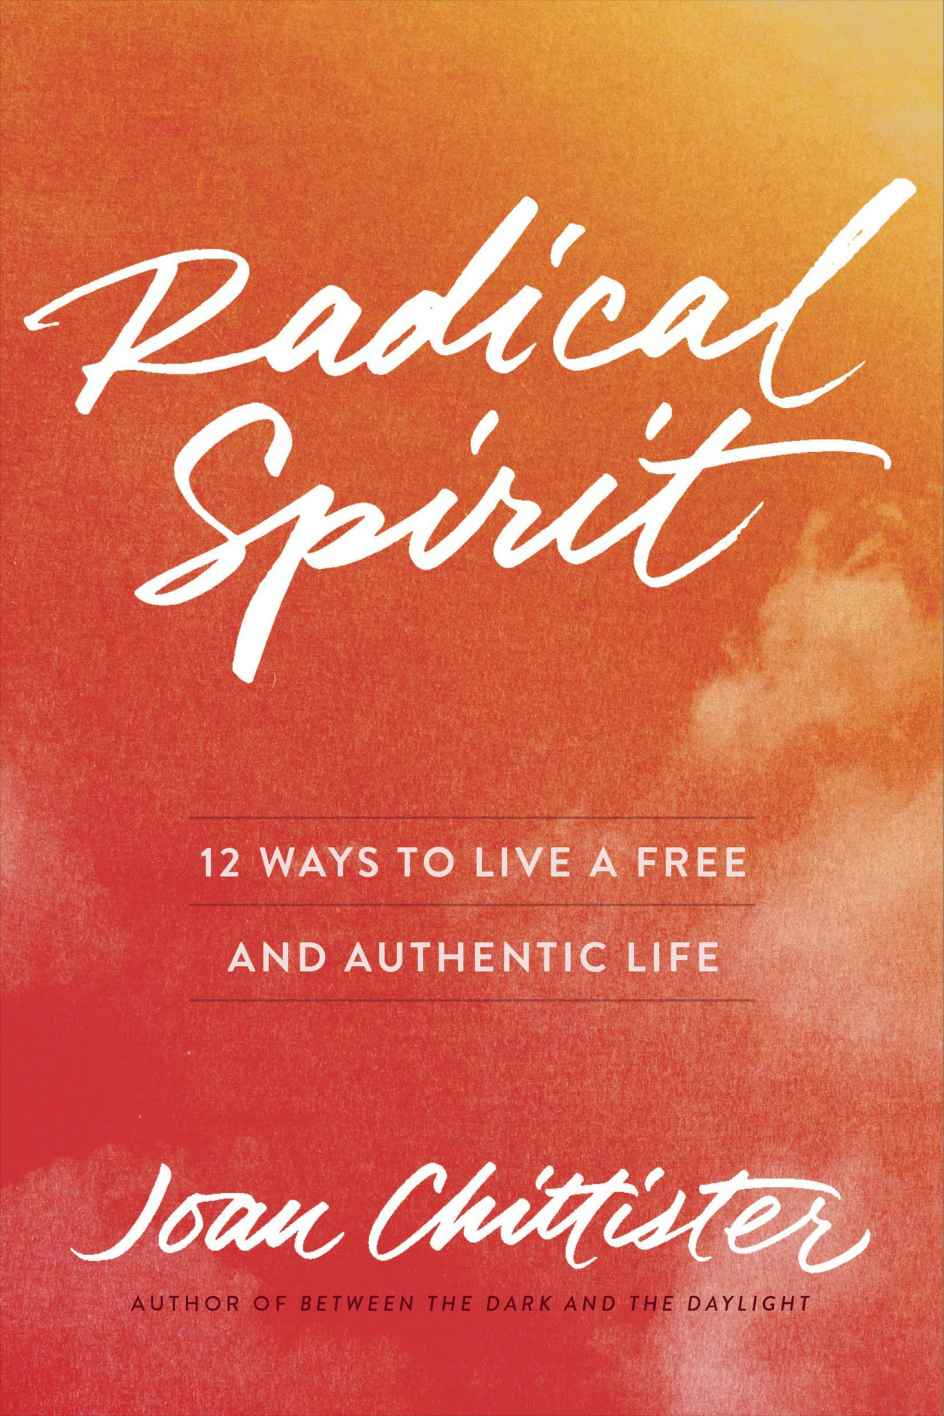 Radical Spirit – 12 Ways to Live a Free & Authentic Life